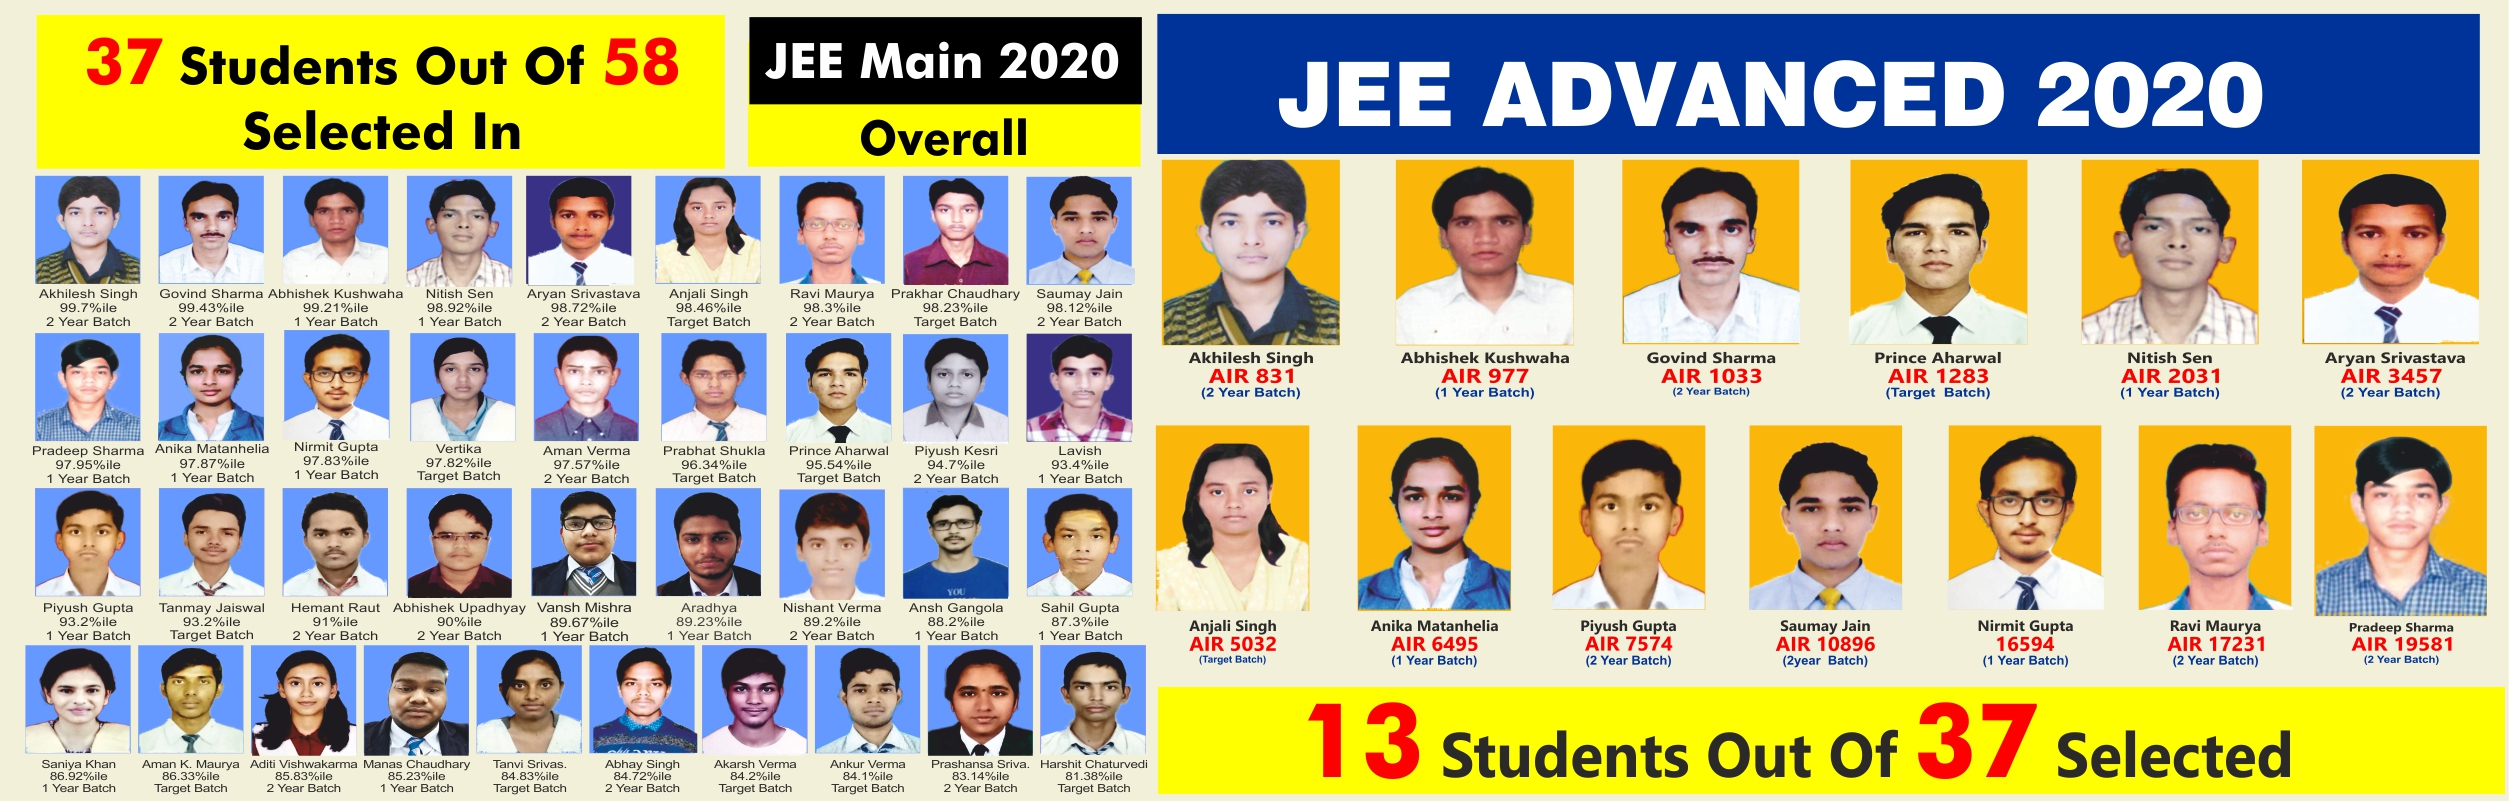 4 jee results (1)